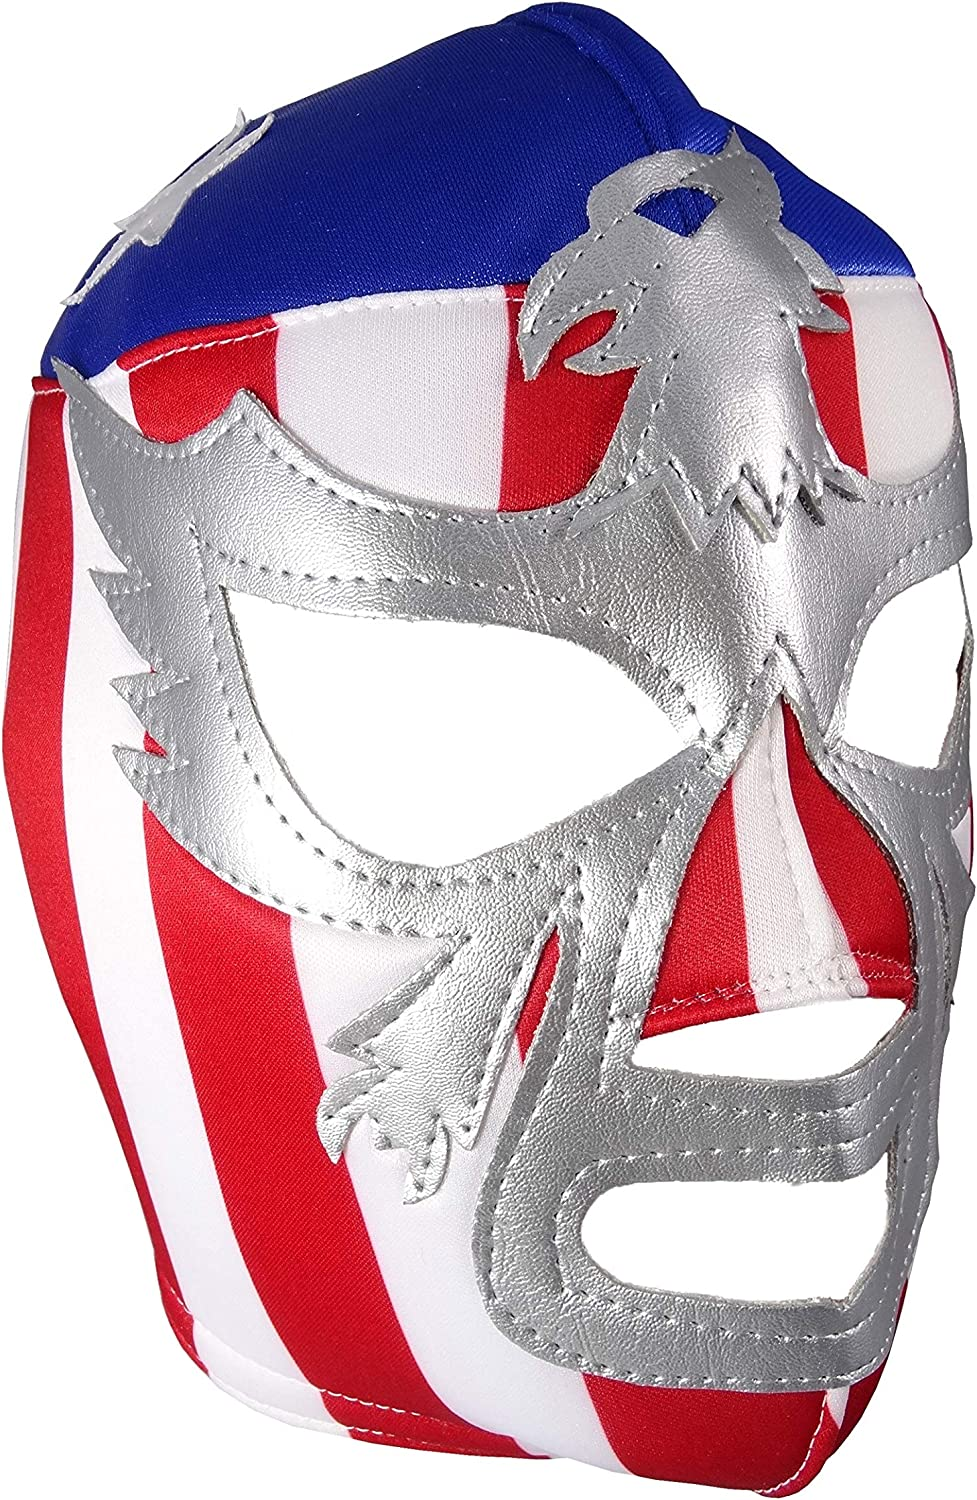 The American Wrestling Mask